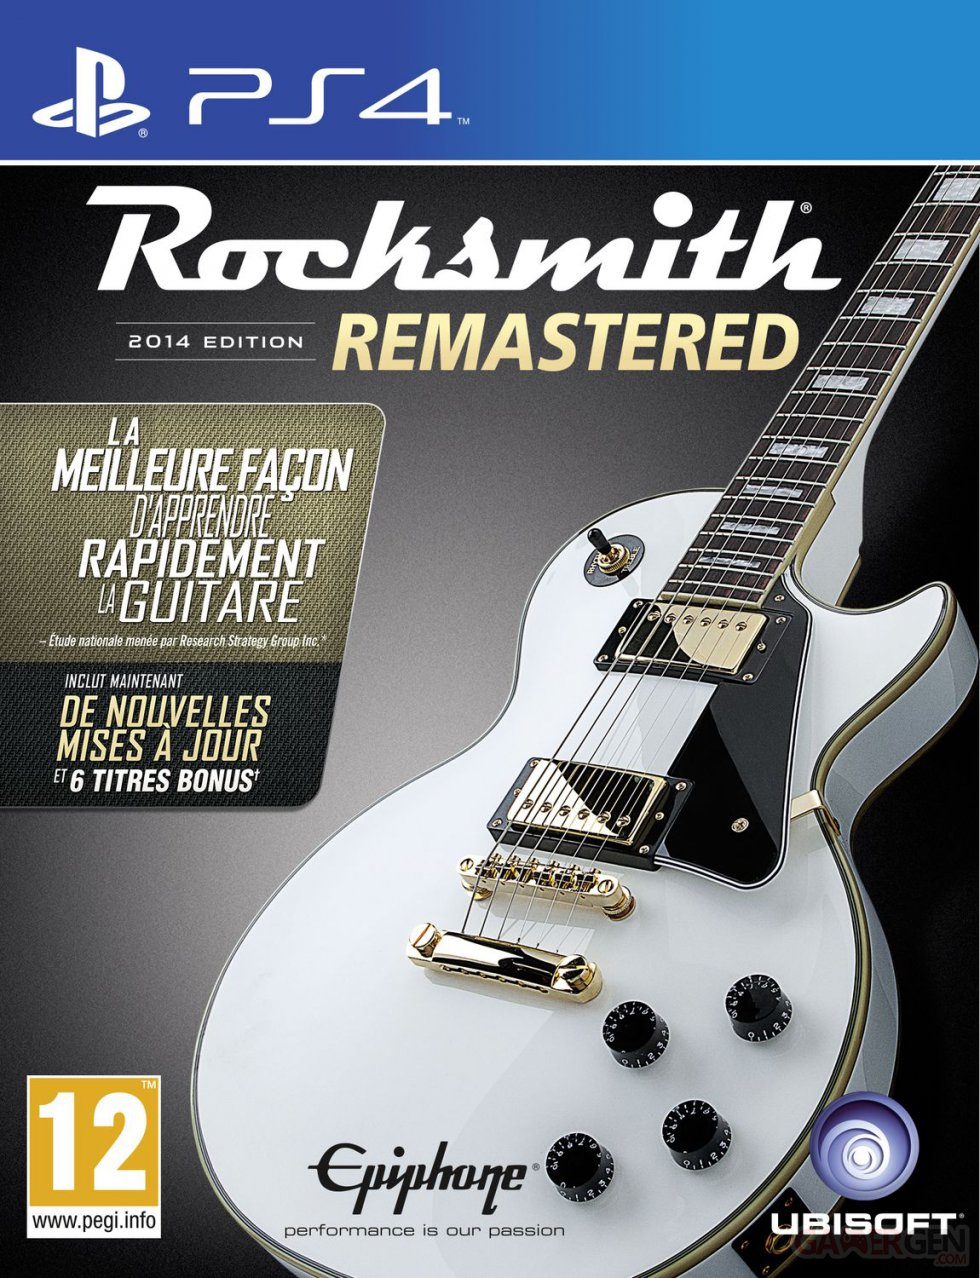 Rocksmith 2014 Remastered